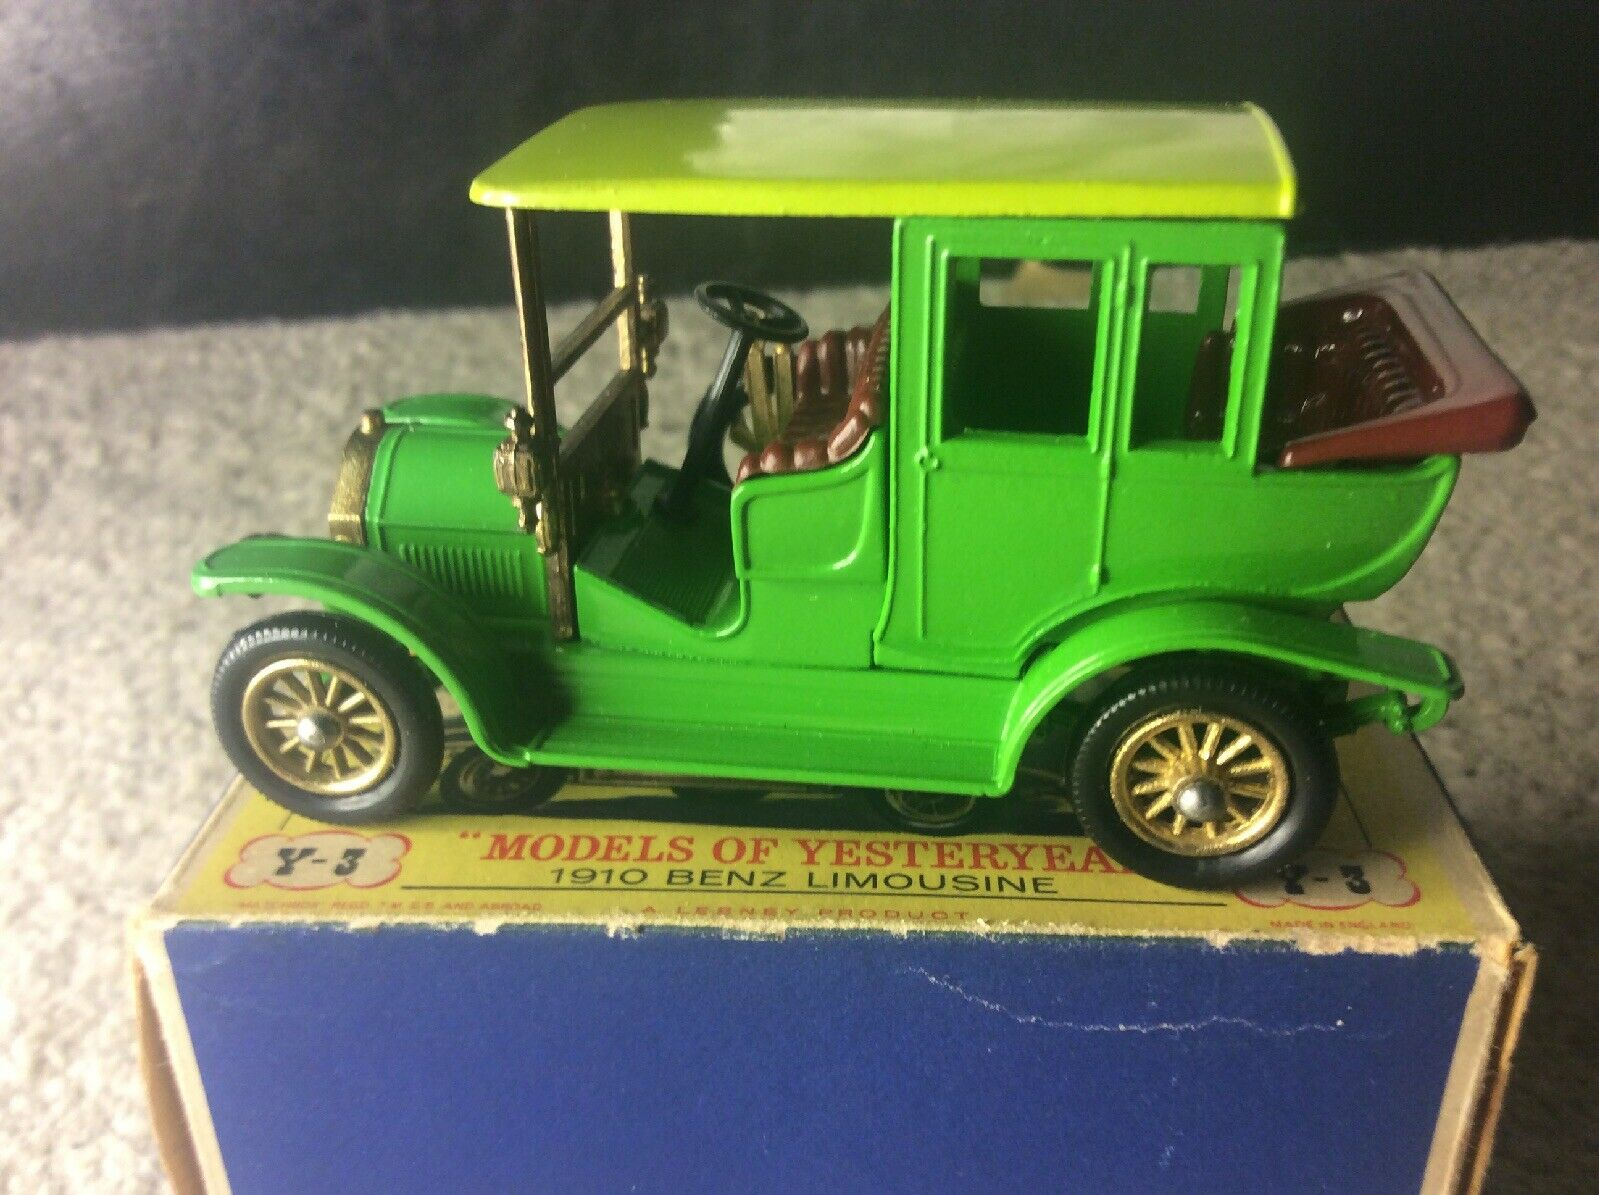 Matchbox vintage y-3 models of yesteryear 1910 benz benz benz limo 65a814